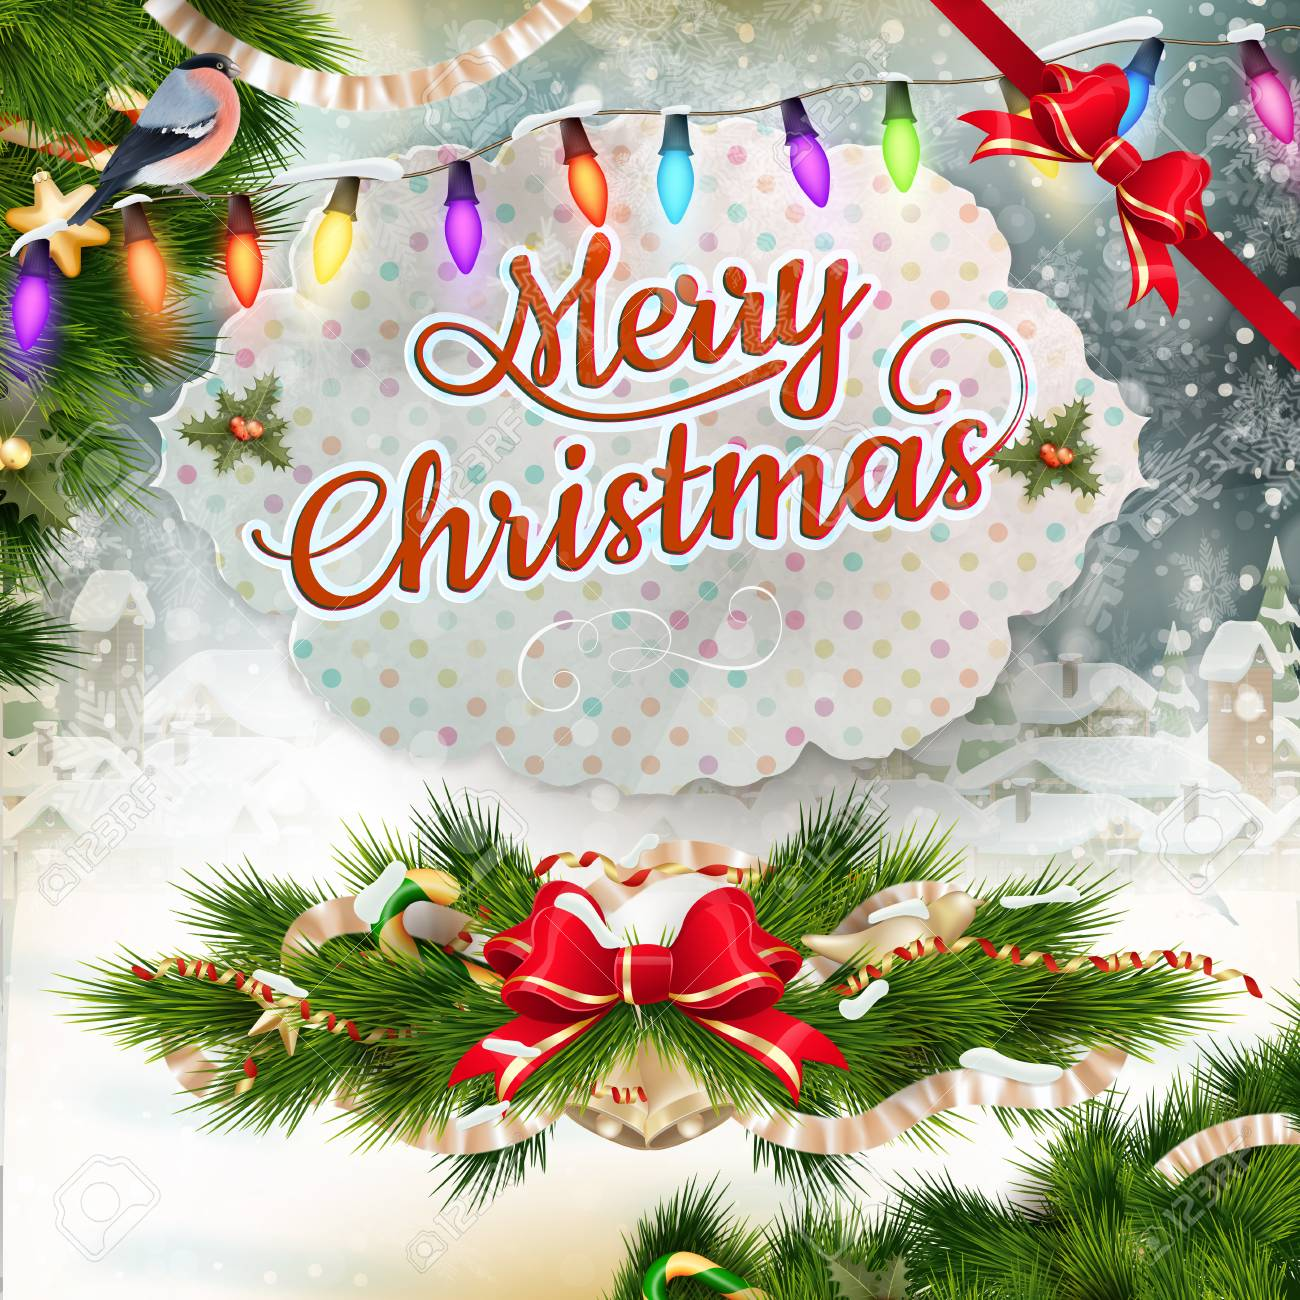 Christmas Greeting Card Light And Snowflakes Background Merry